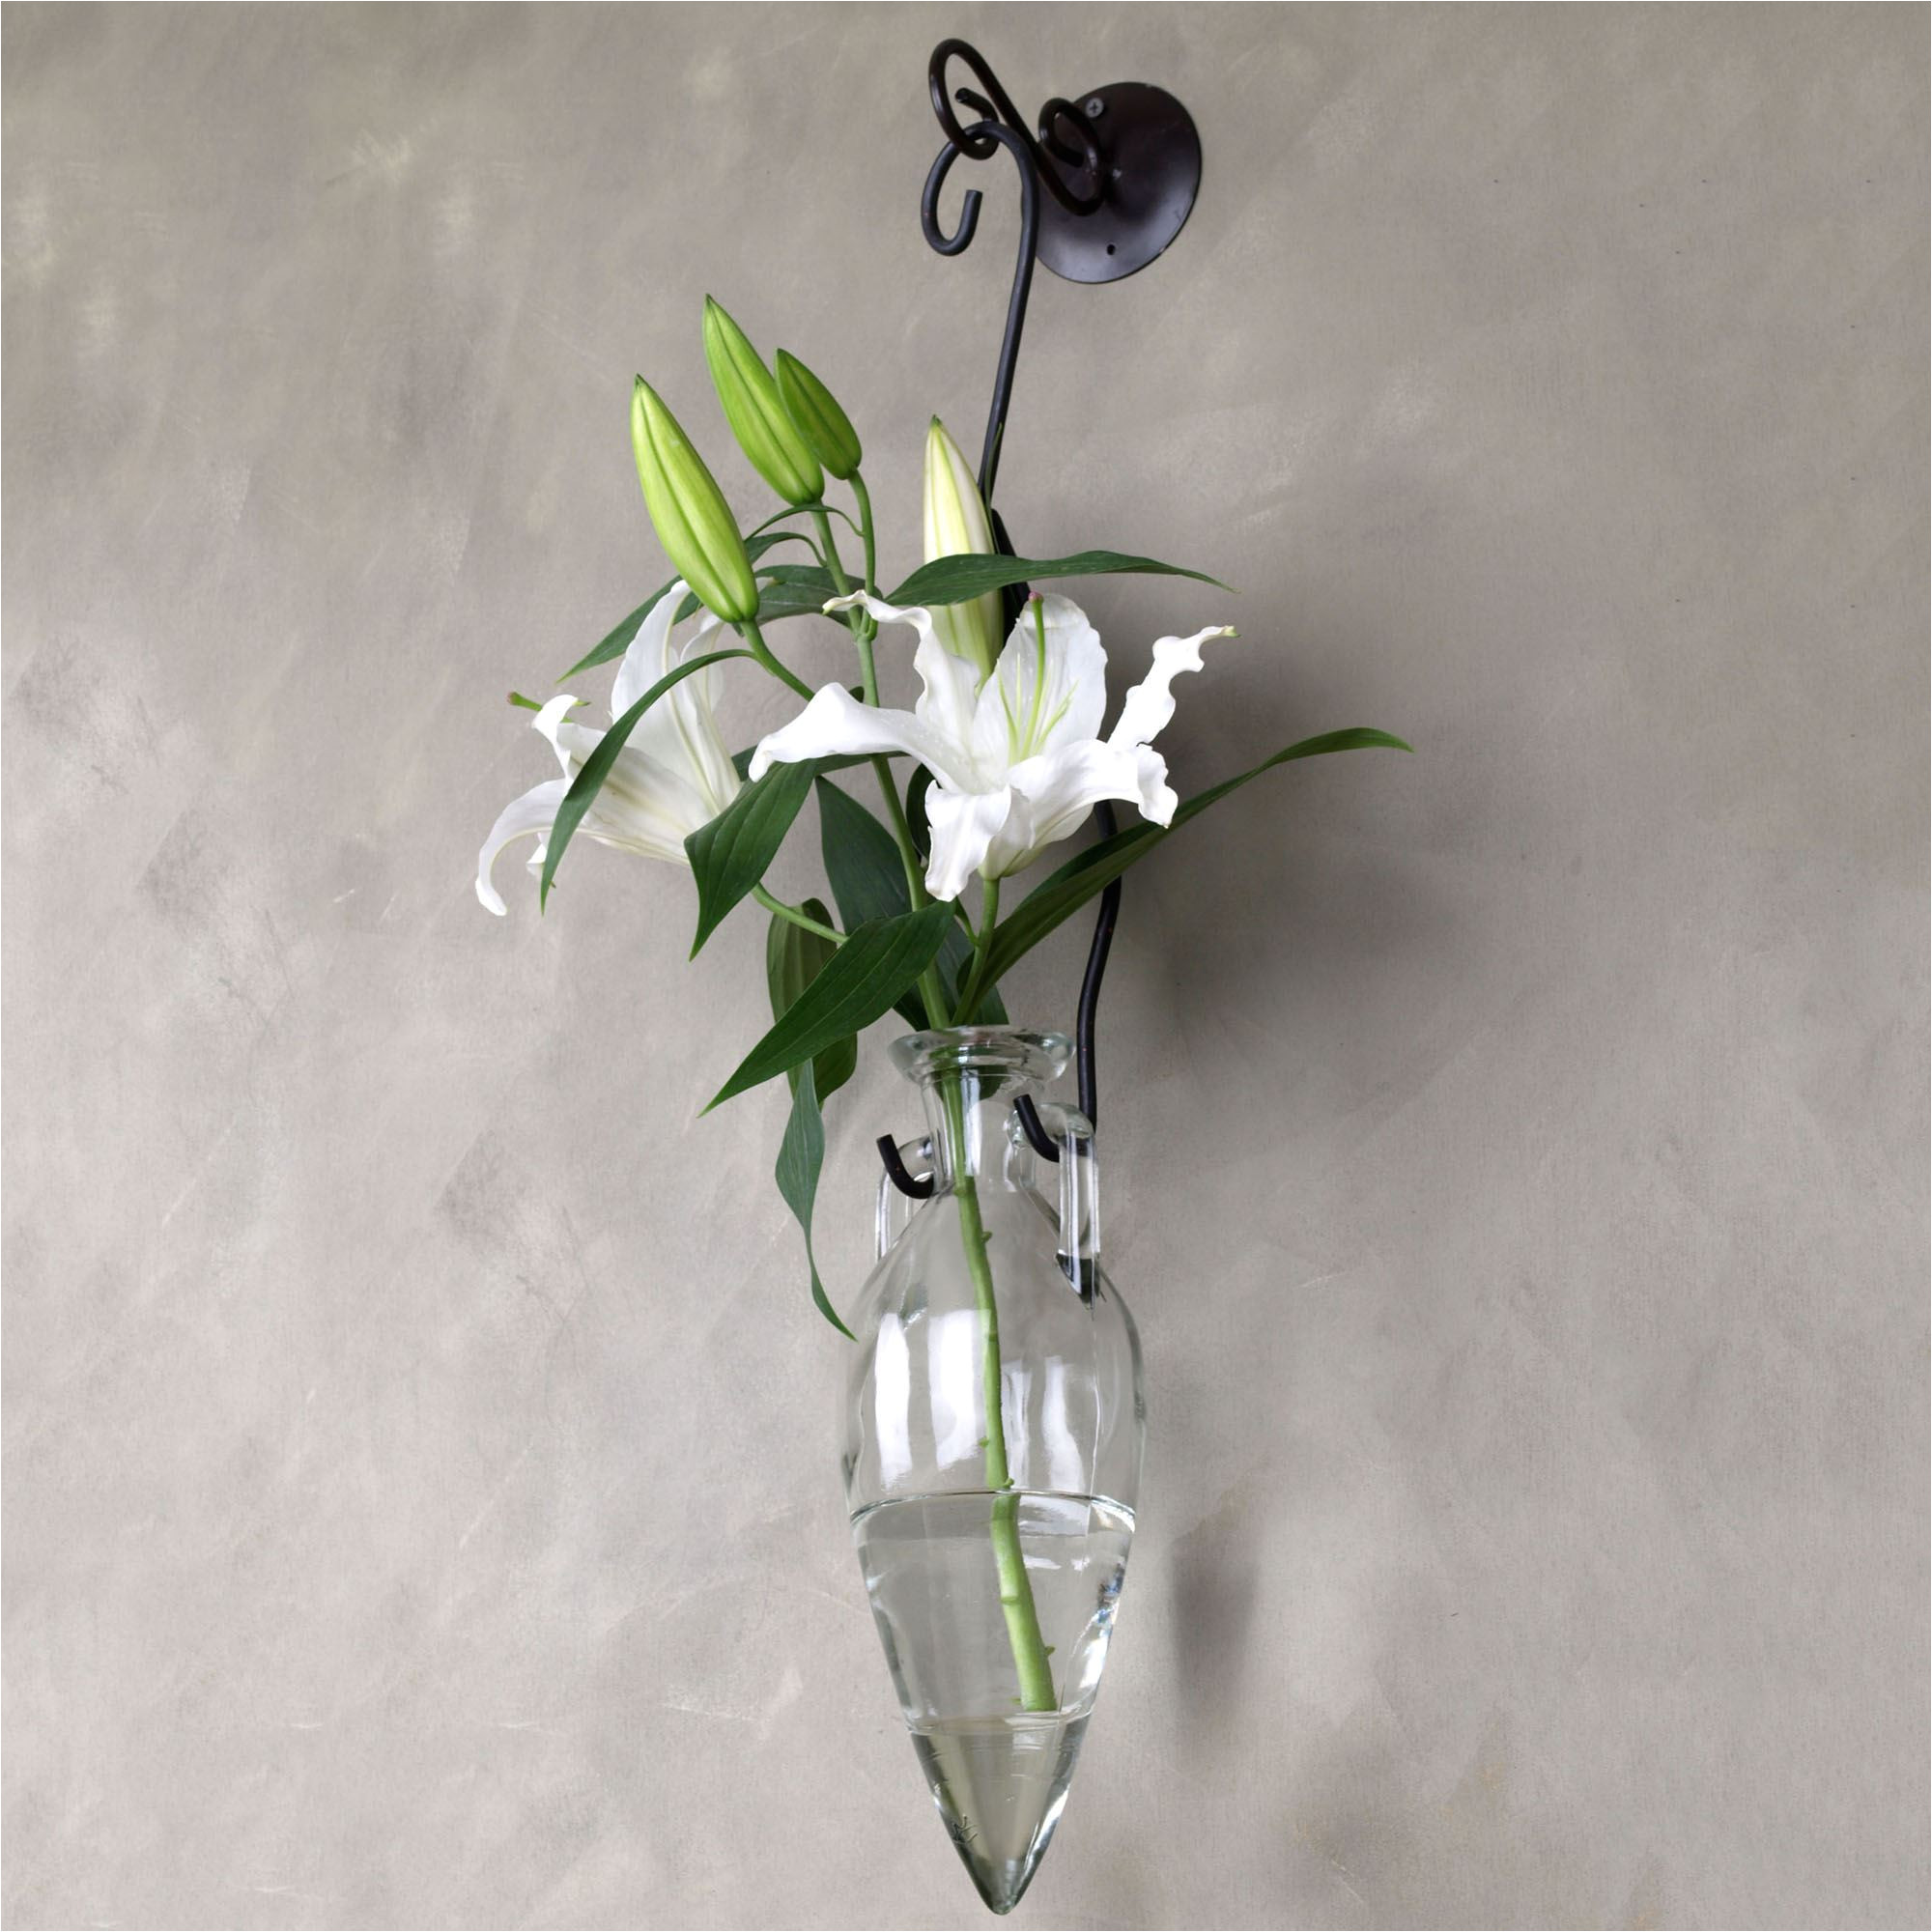 metal vase decor stock h vases wall hanging flower vase newspaper i 0d scheme wall scheme